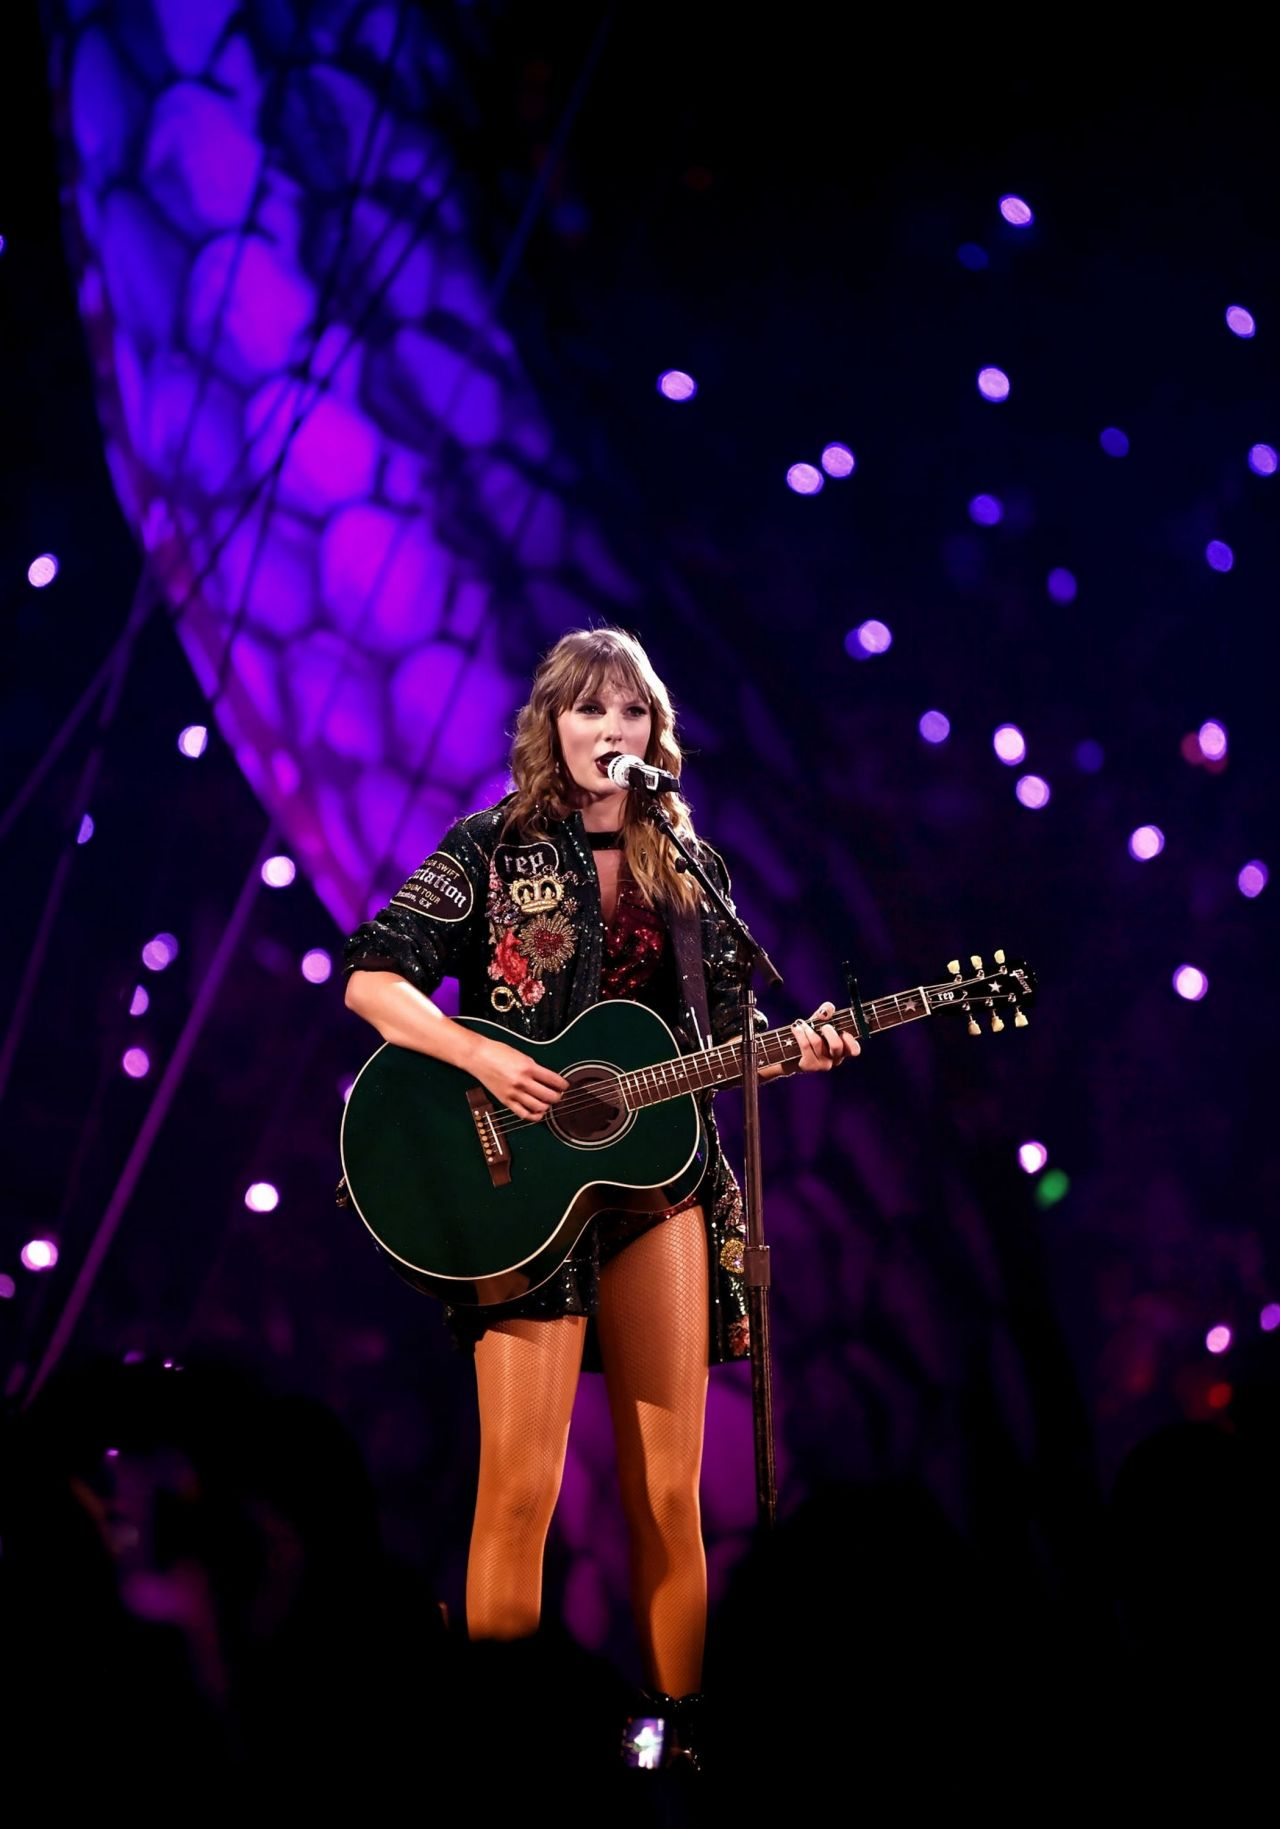 taylor swift performs live at reputation tour in houston. Black Bedroom Furniture Sets. Home Design Ideas